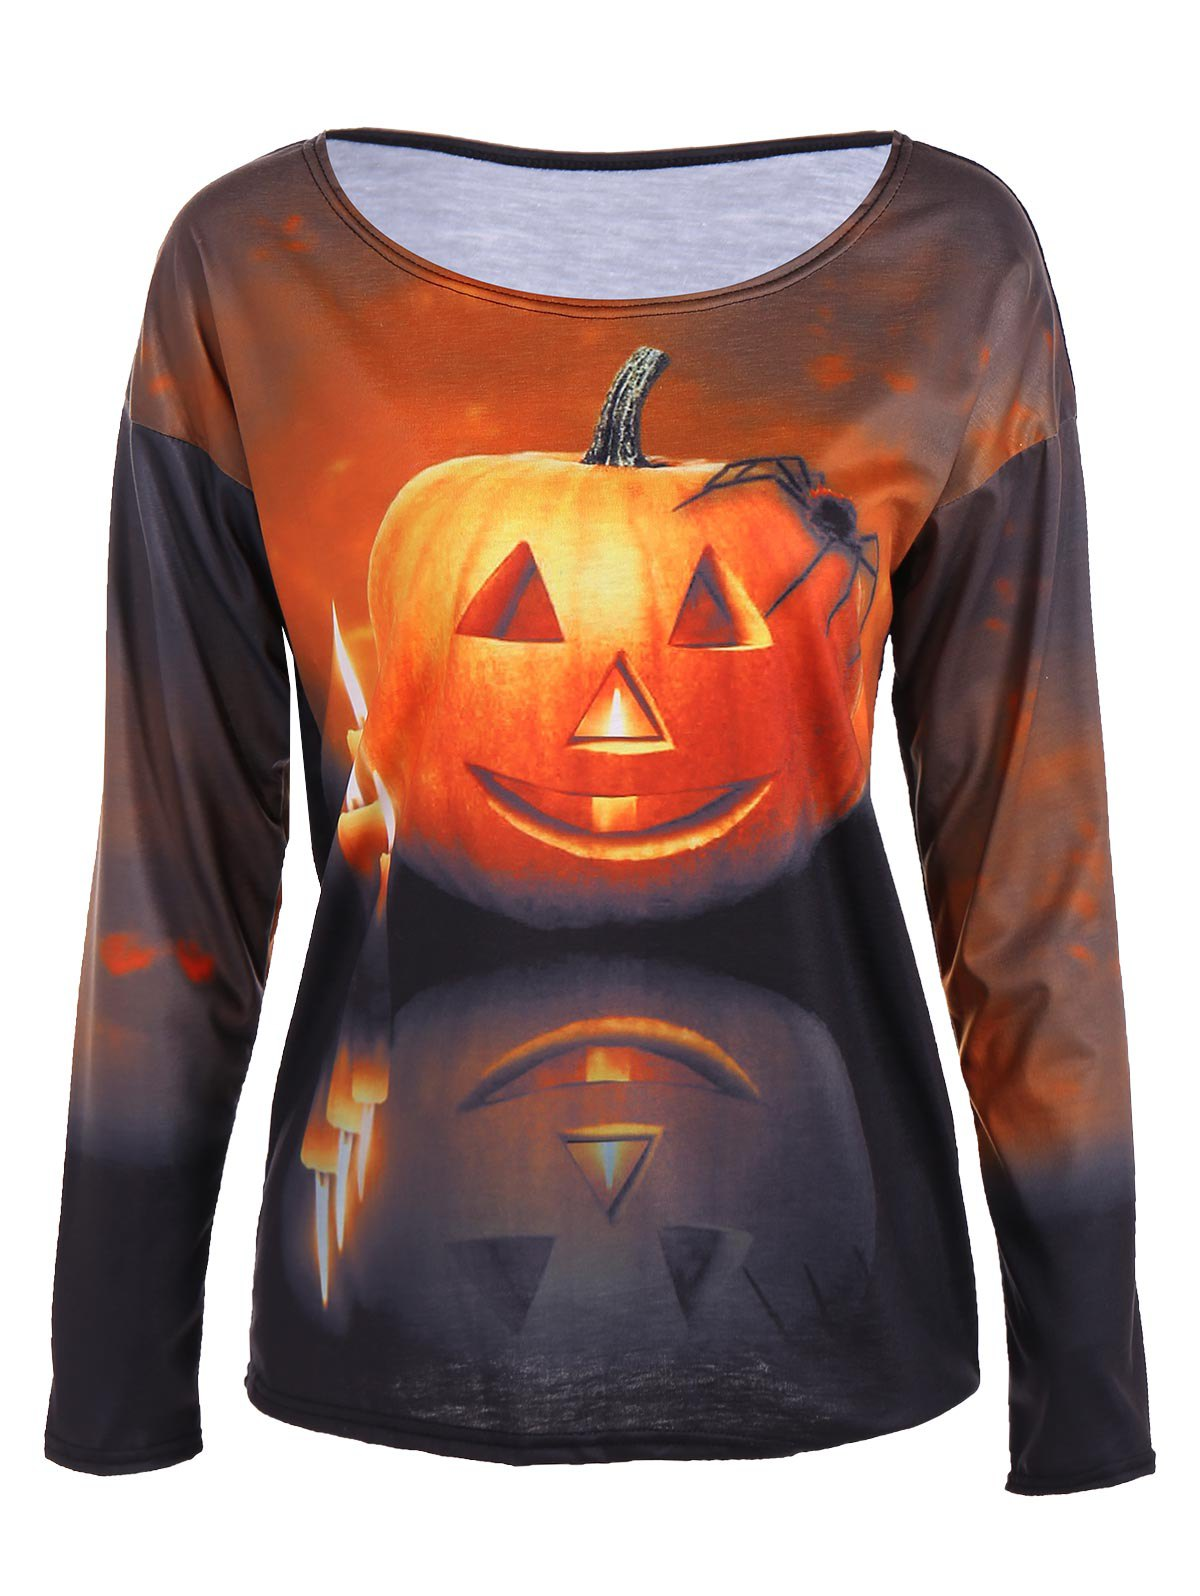 3D Pumpkin Print Halloween T-Shirt - COLORMIX S